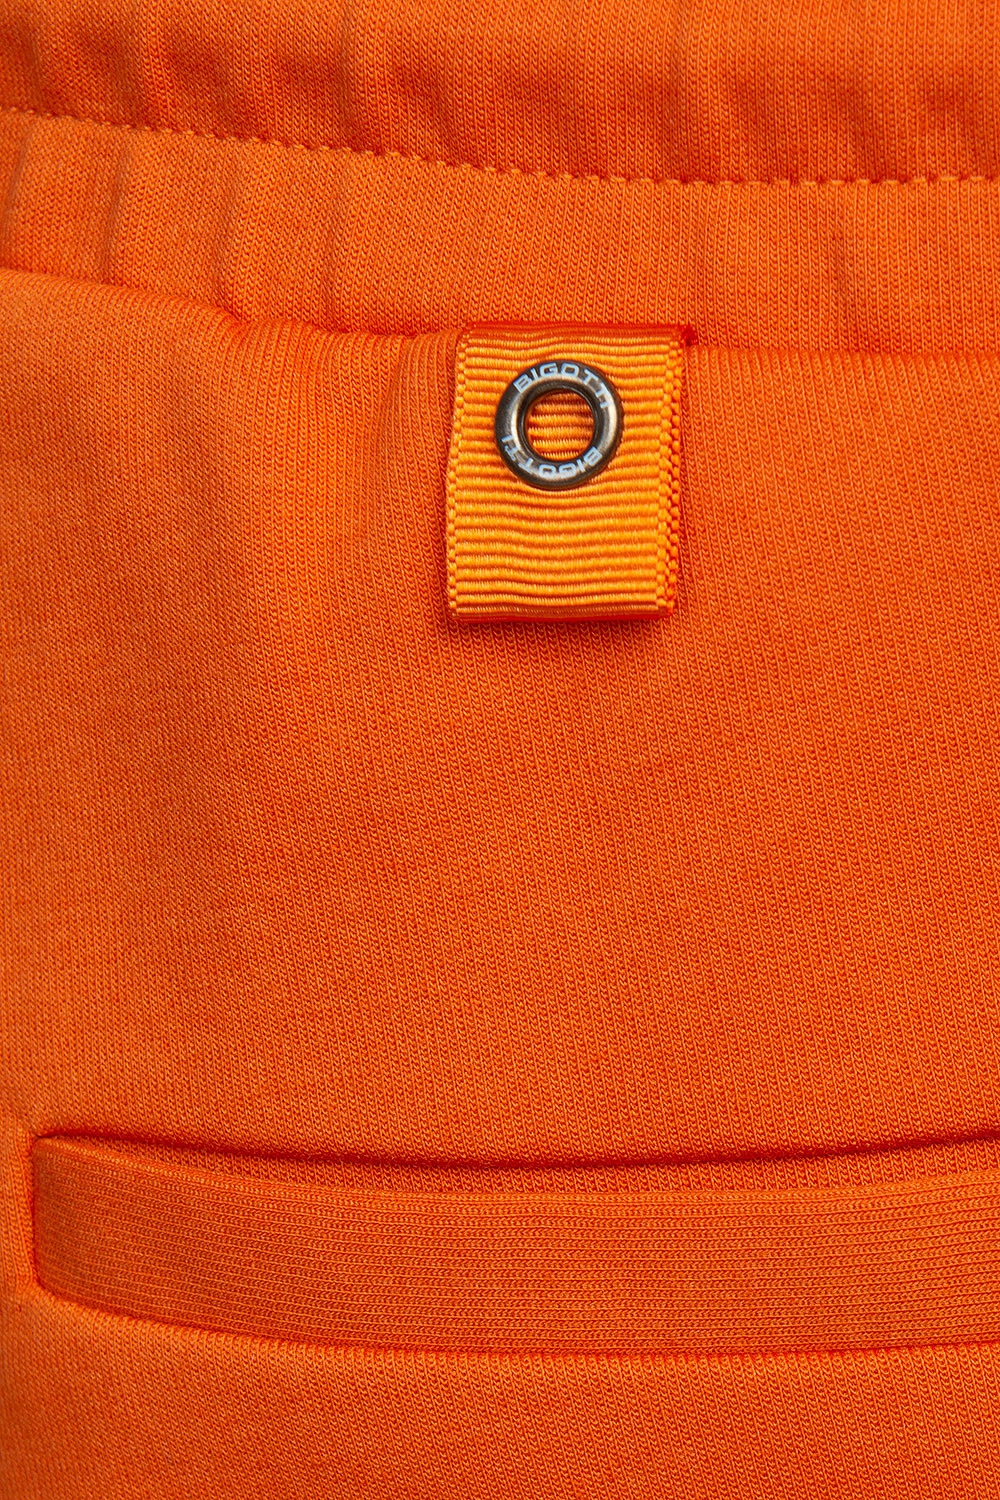 Slim body Orange Plain Trouser 2